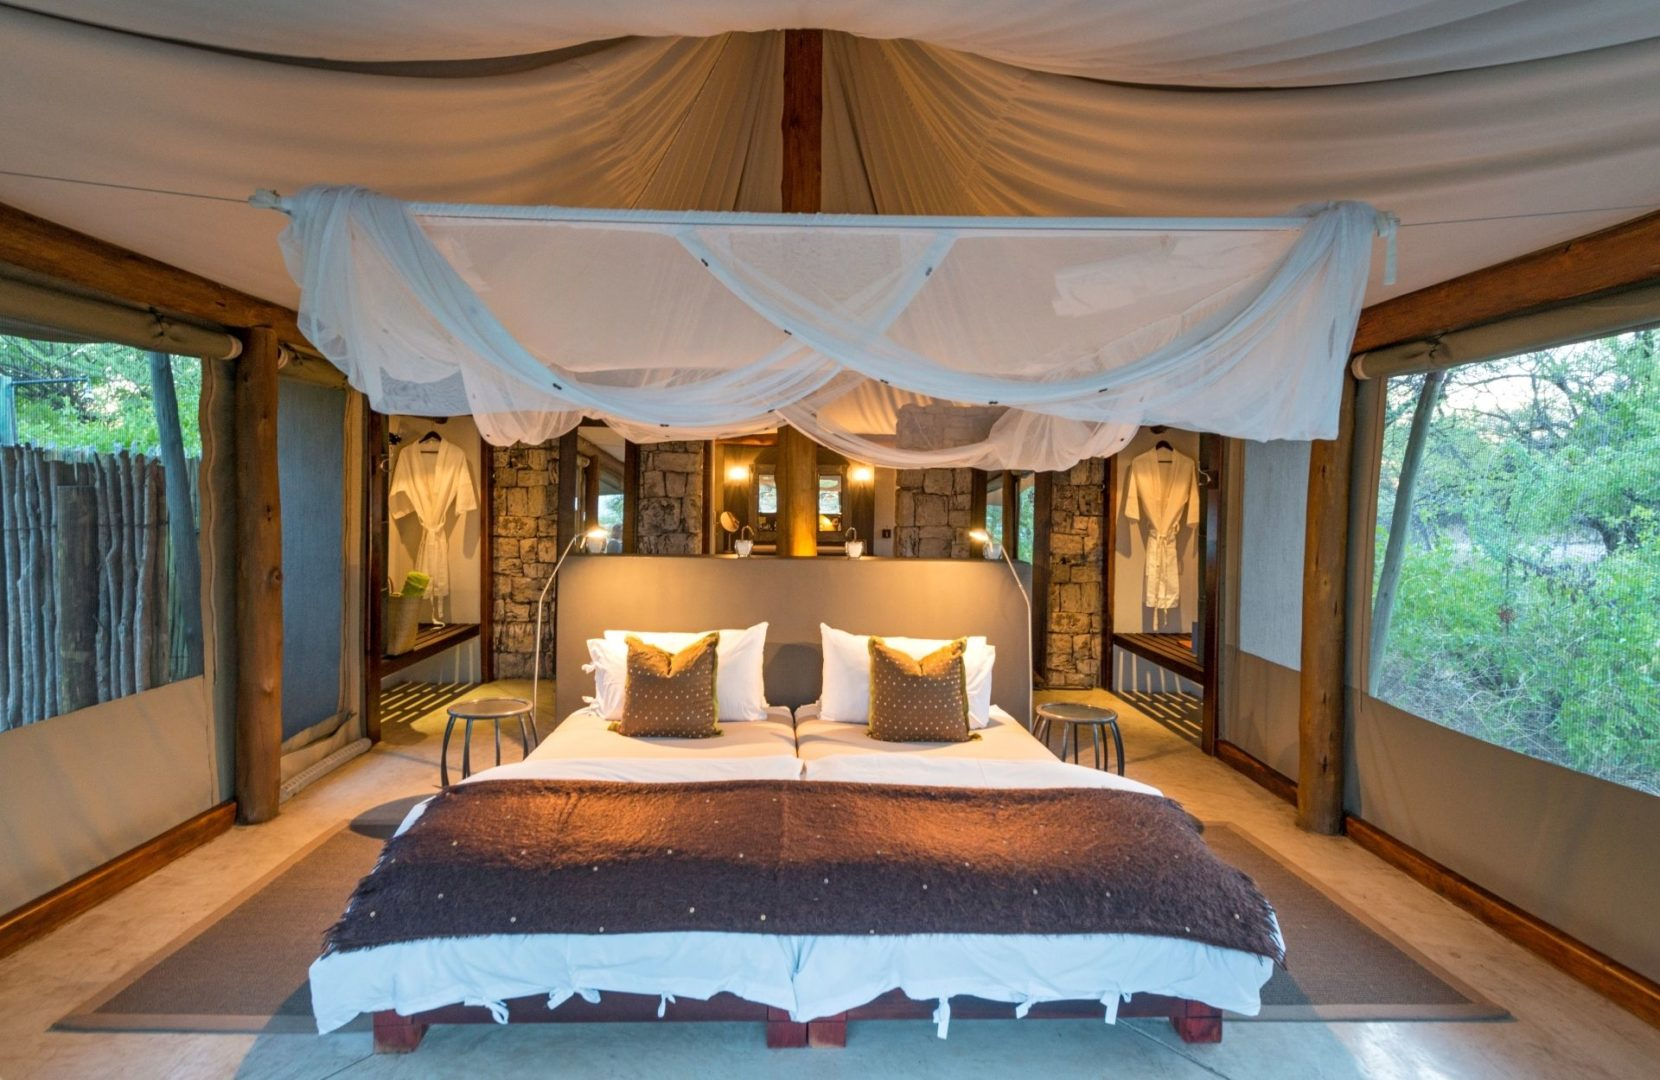 Luxury tents all have indoor and outdoor showers